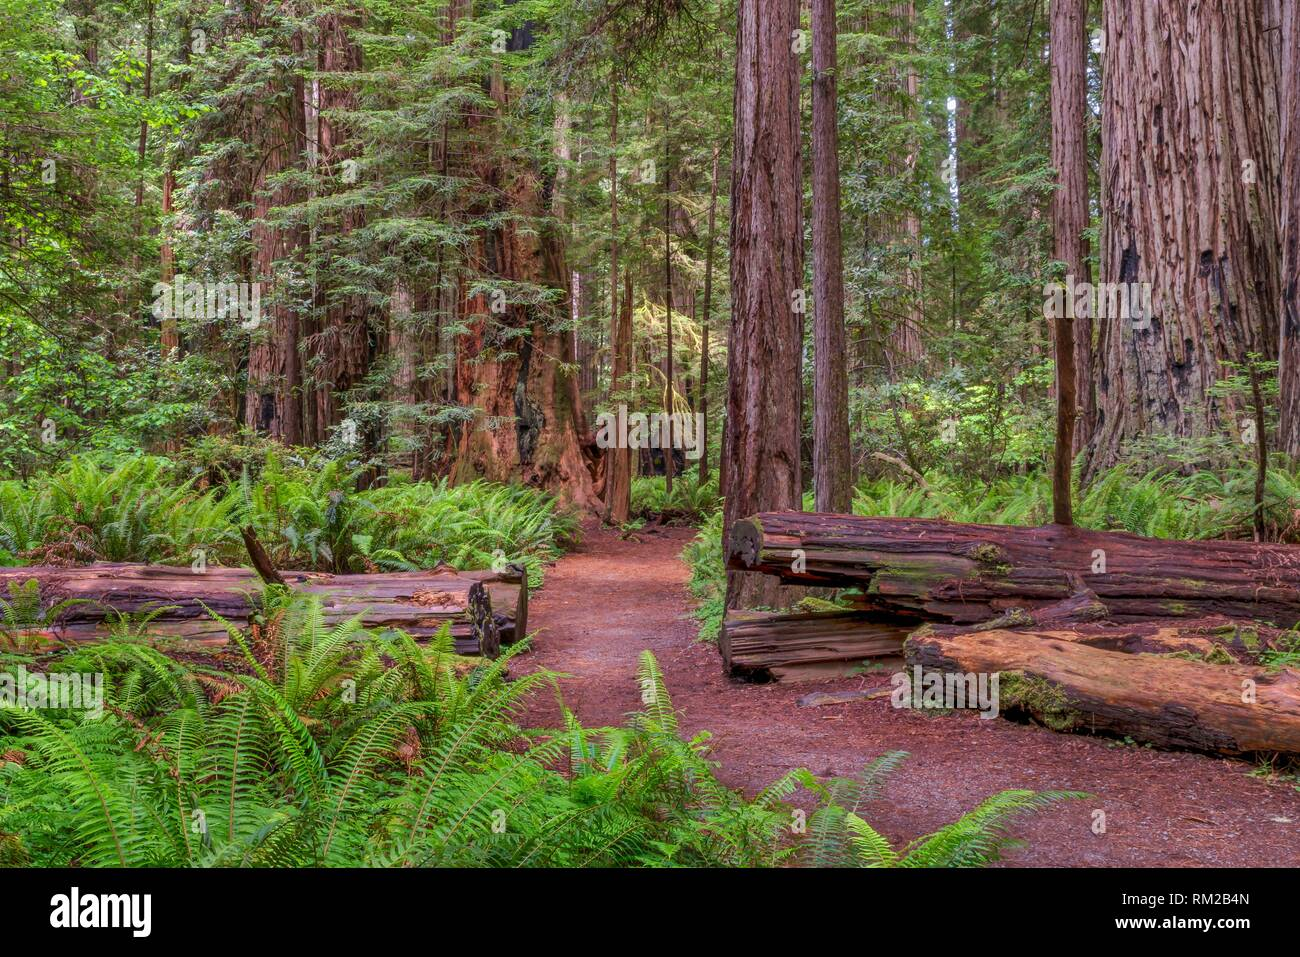 Sun between rain storms on a path in Stout Memorial Grove, Jedediah Smith Redwoods State Park, CA, USA. - Stock Image